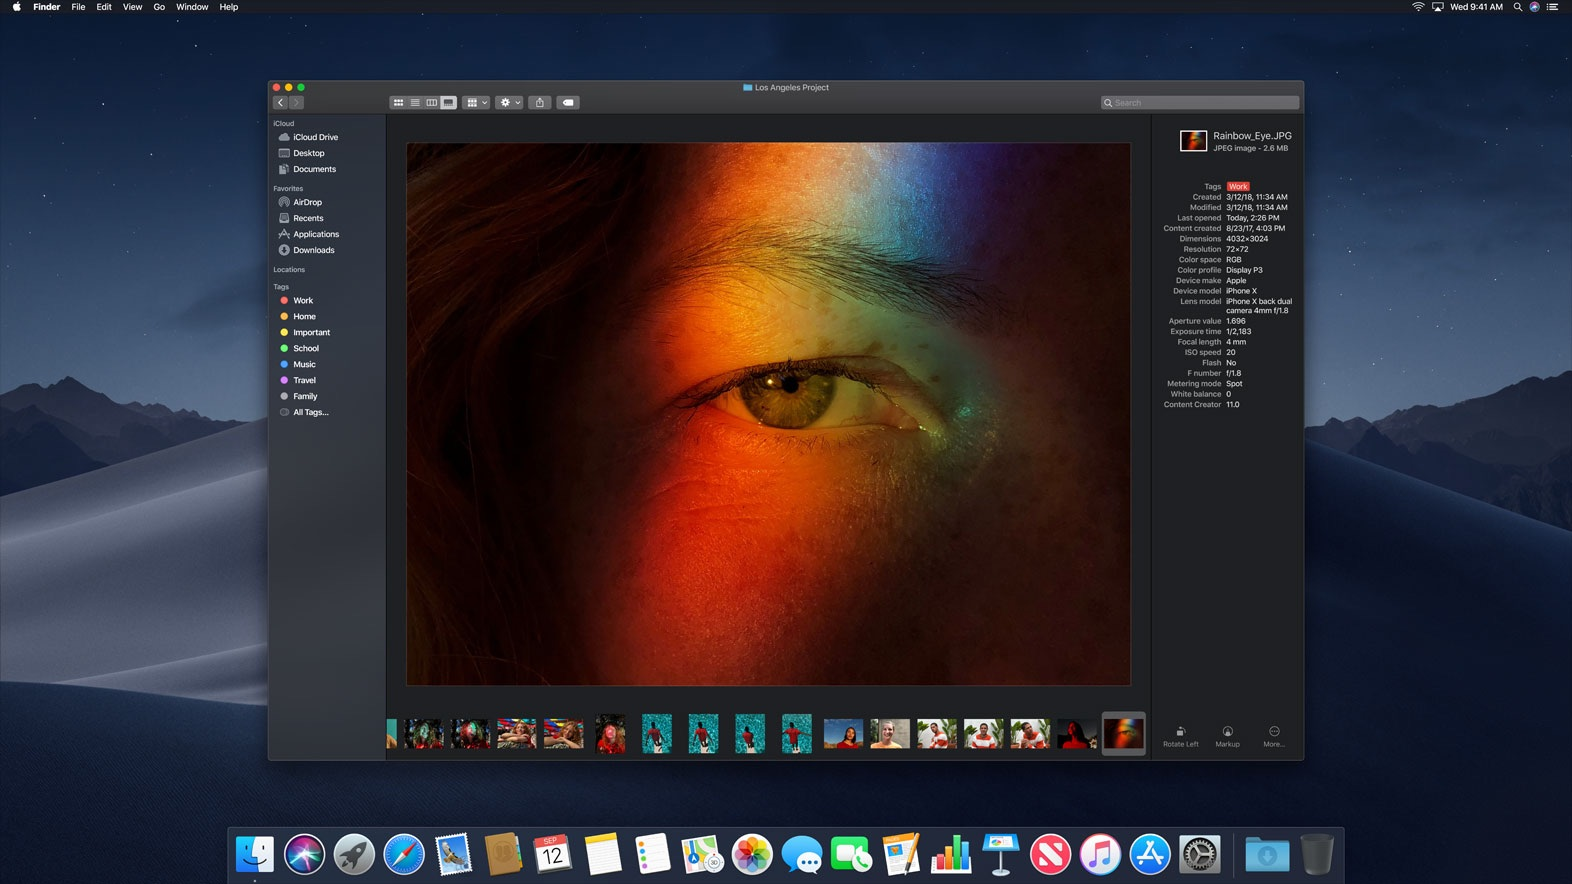 macOS Mojave dark mode